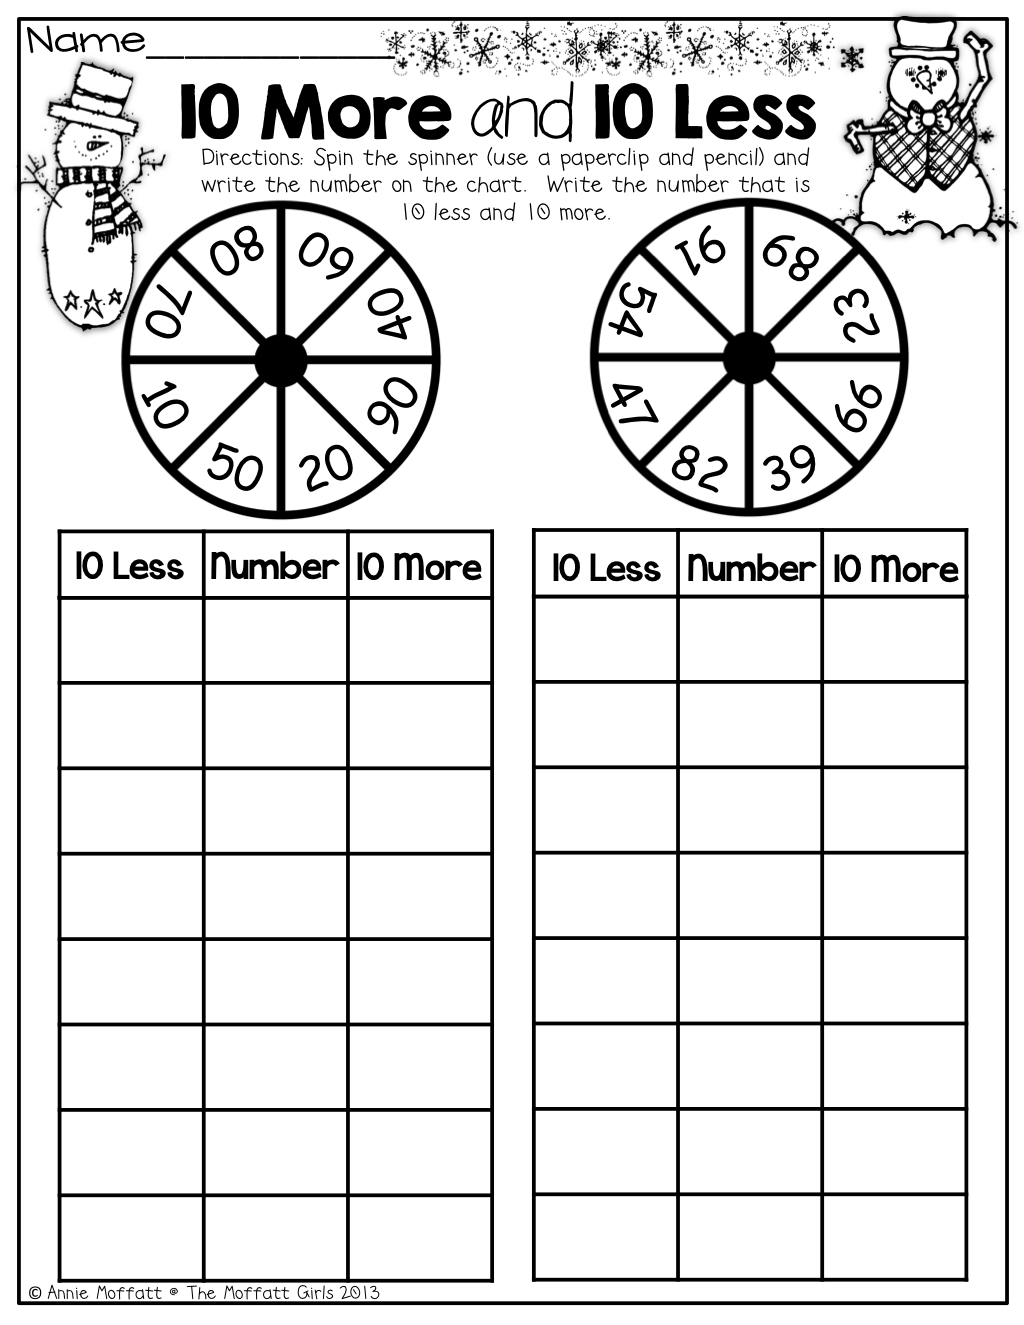 worksheet 10 More 10 Less Worksheet 0 more and 10 less spin the spinner with a pencil paper clip clip